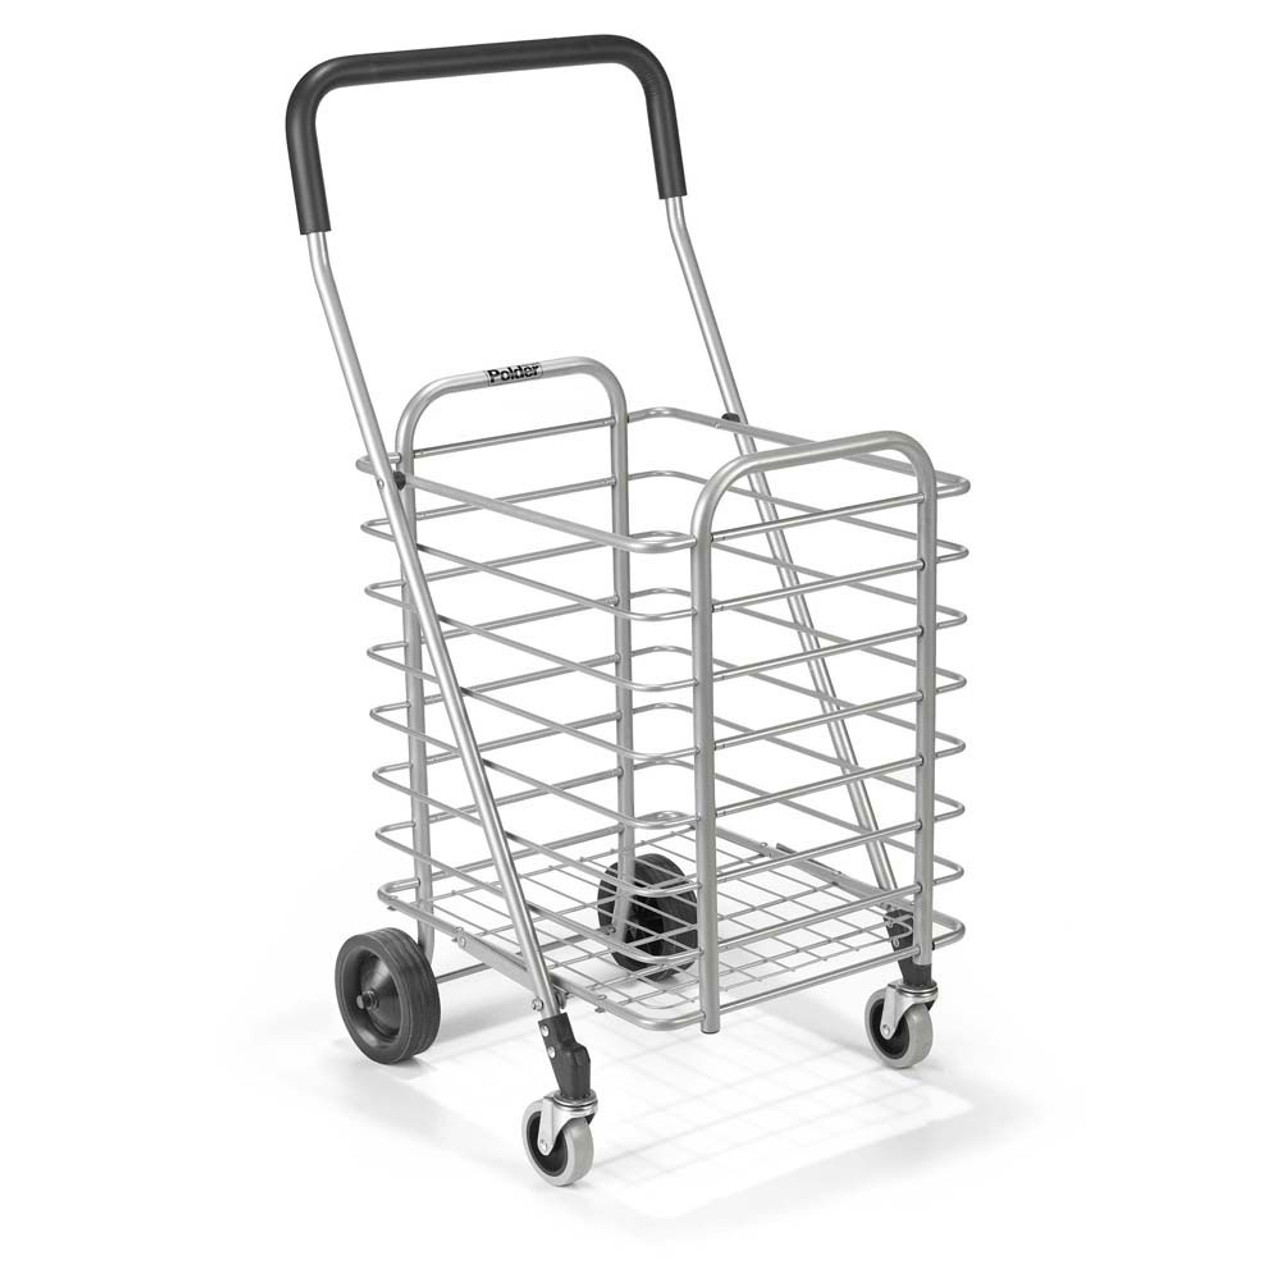 Lightweight Aluminum Cart by Polder